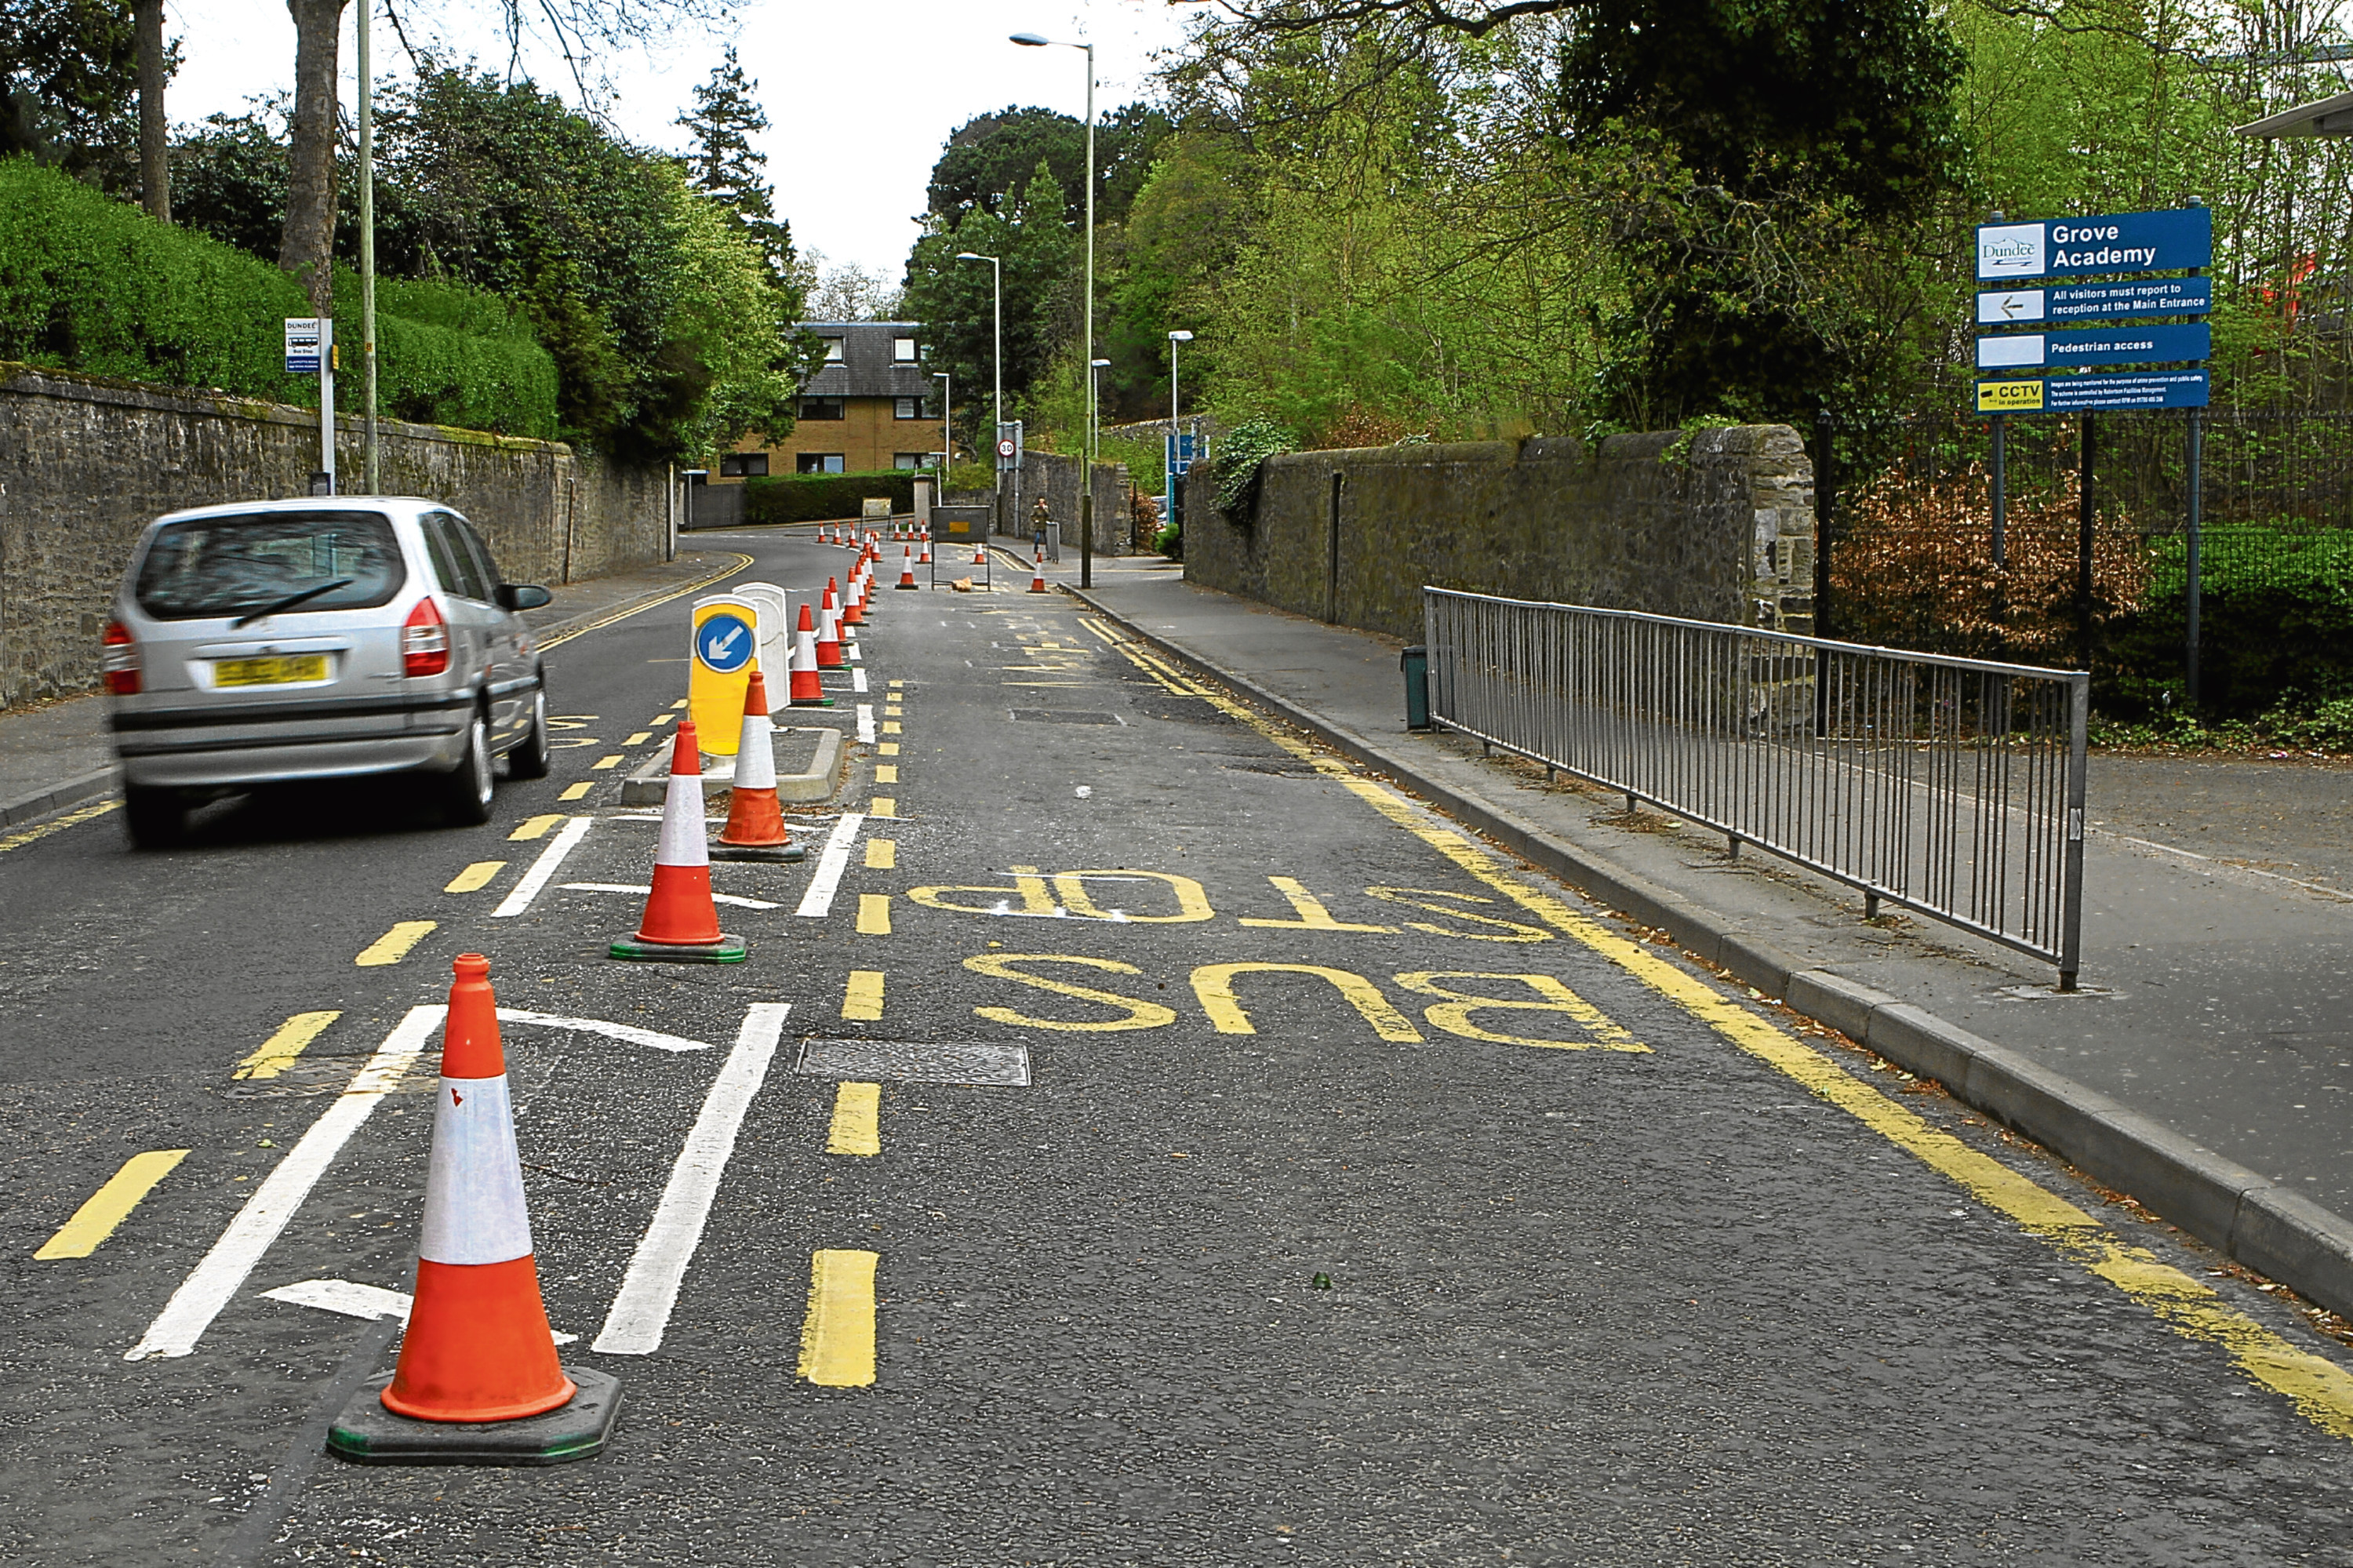 The temporary roadworks at Grove Academy.